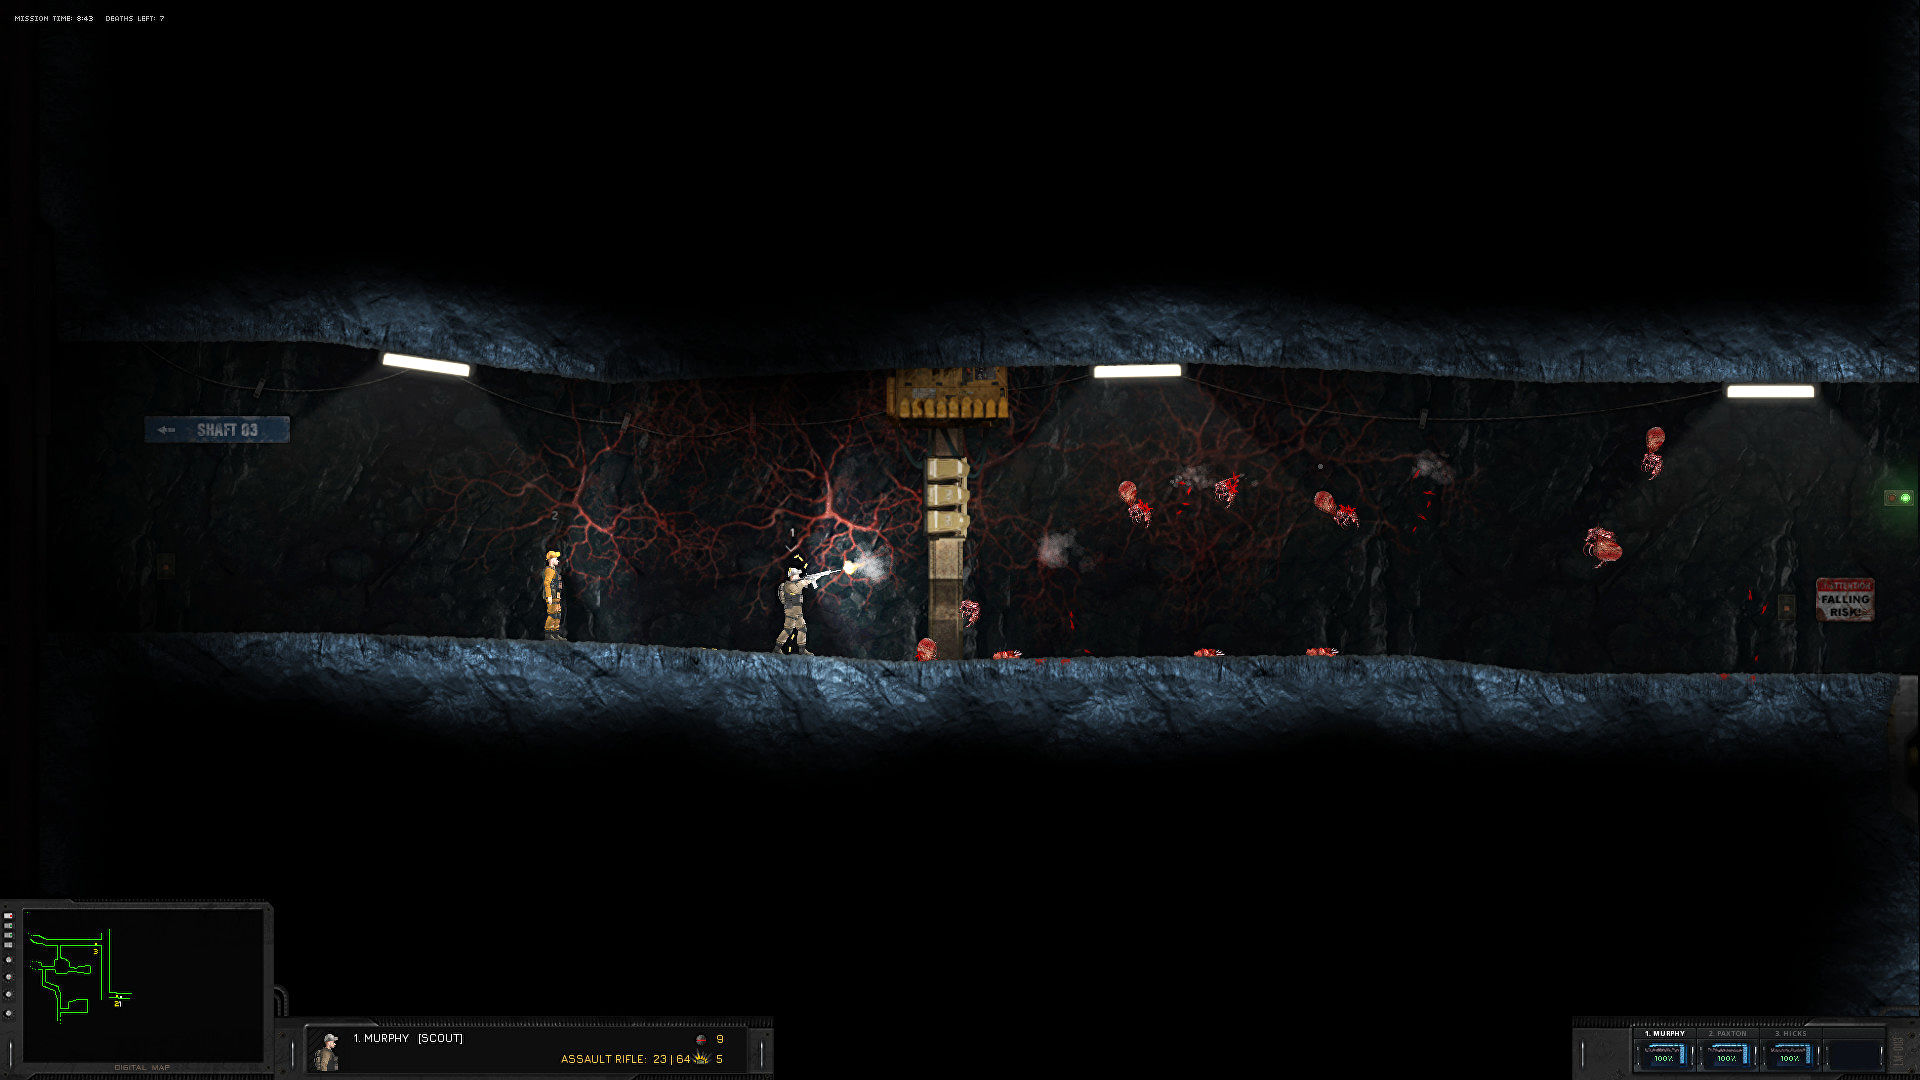 Hidden Deep is a physics horror game inspired by The Thing